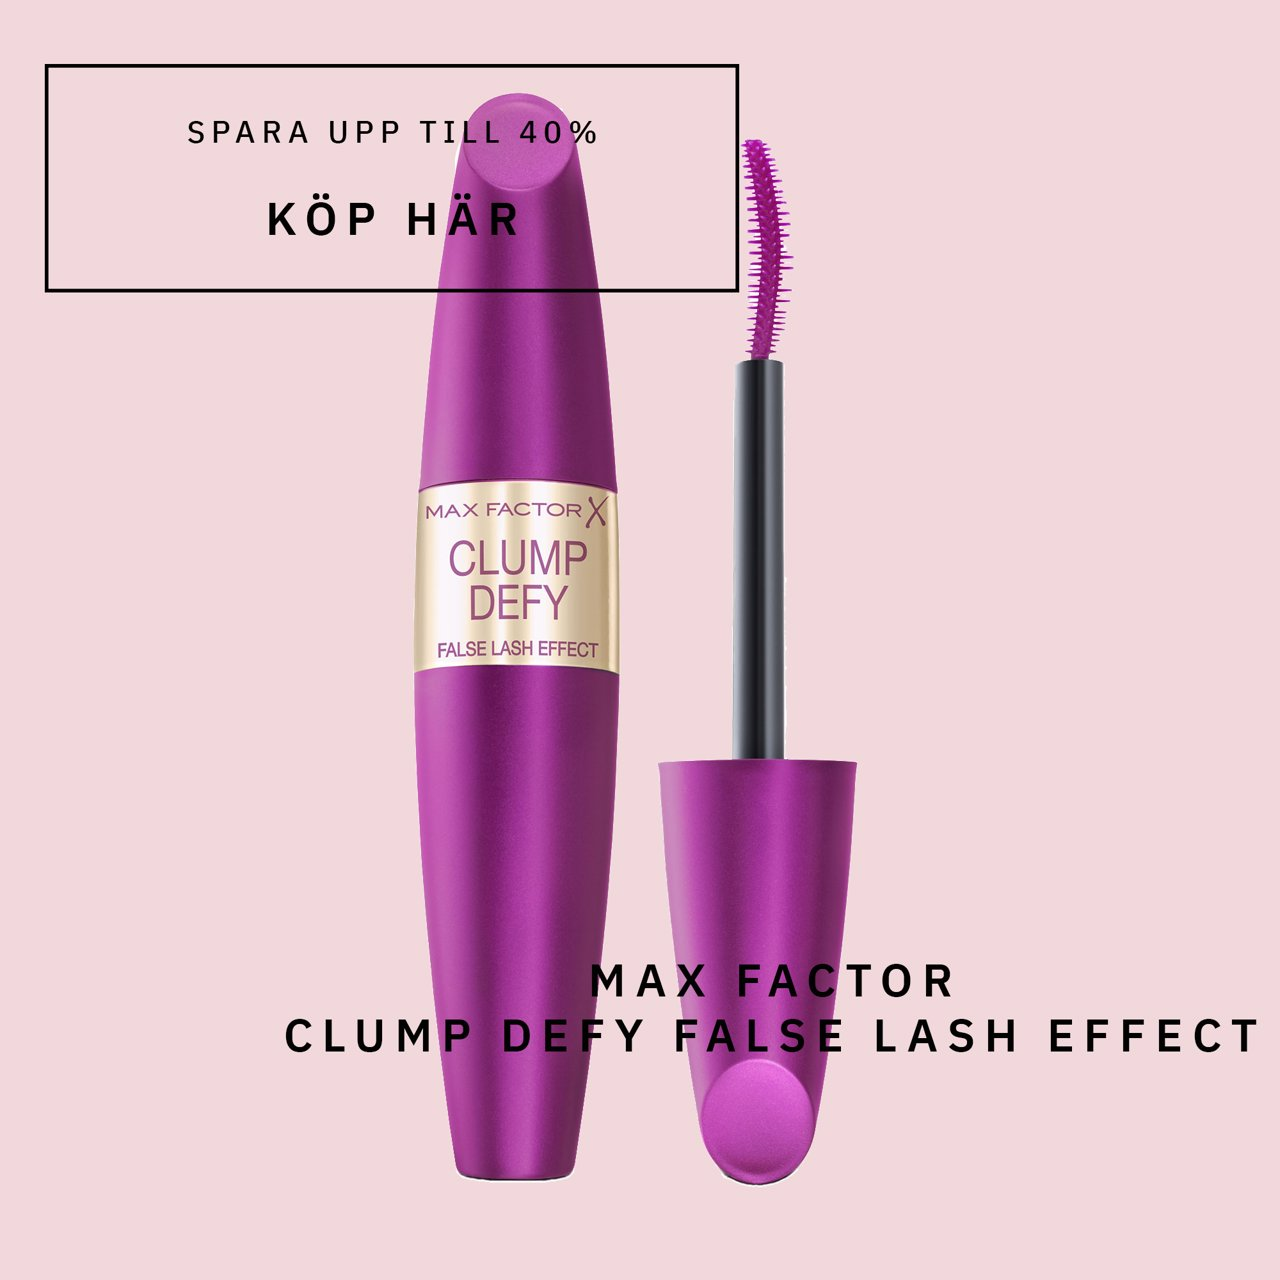 /makeup/max-factor/max-factor-clump-defy-volumising-mascara